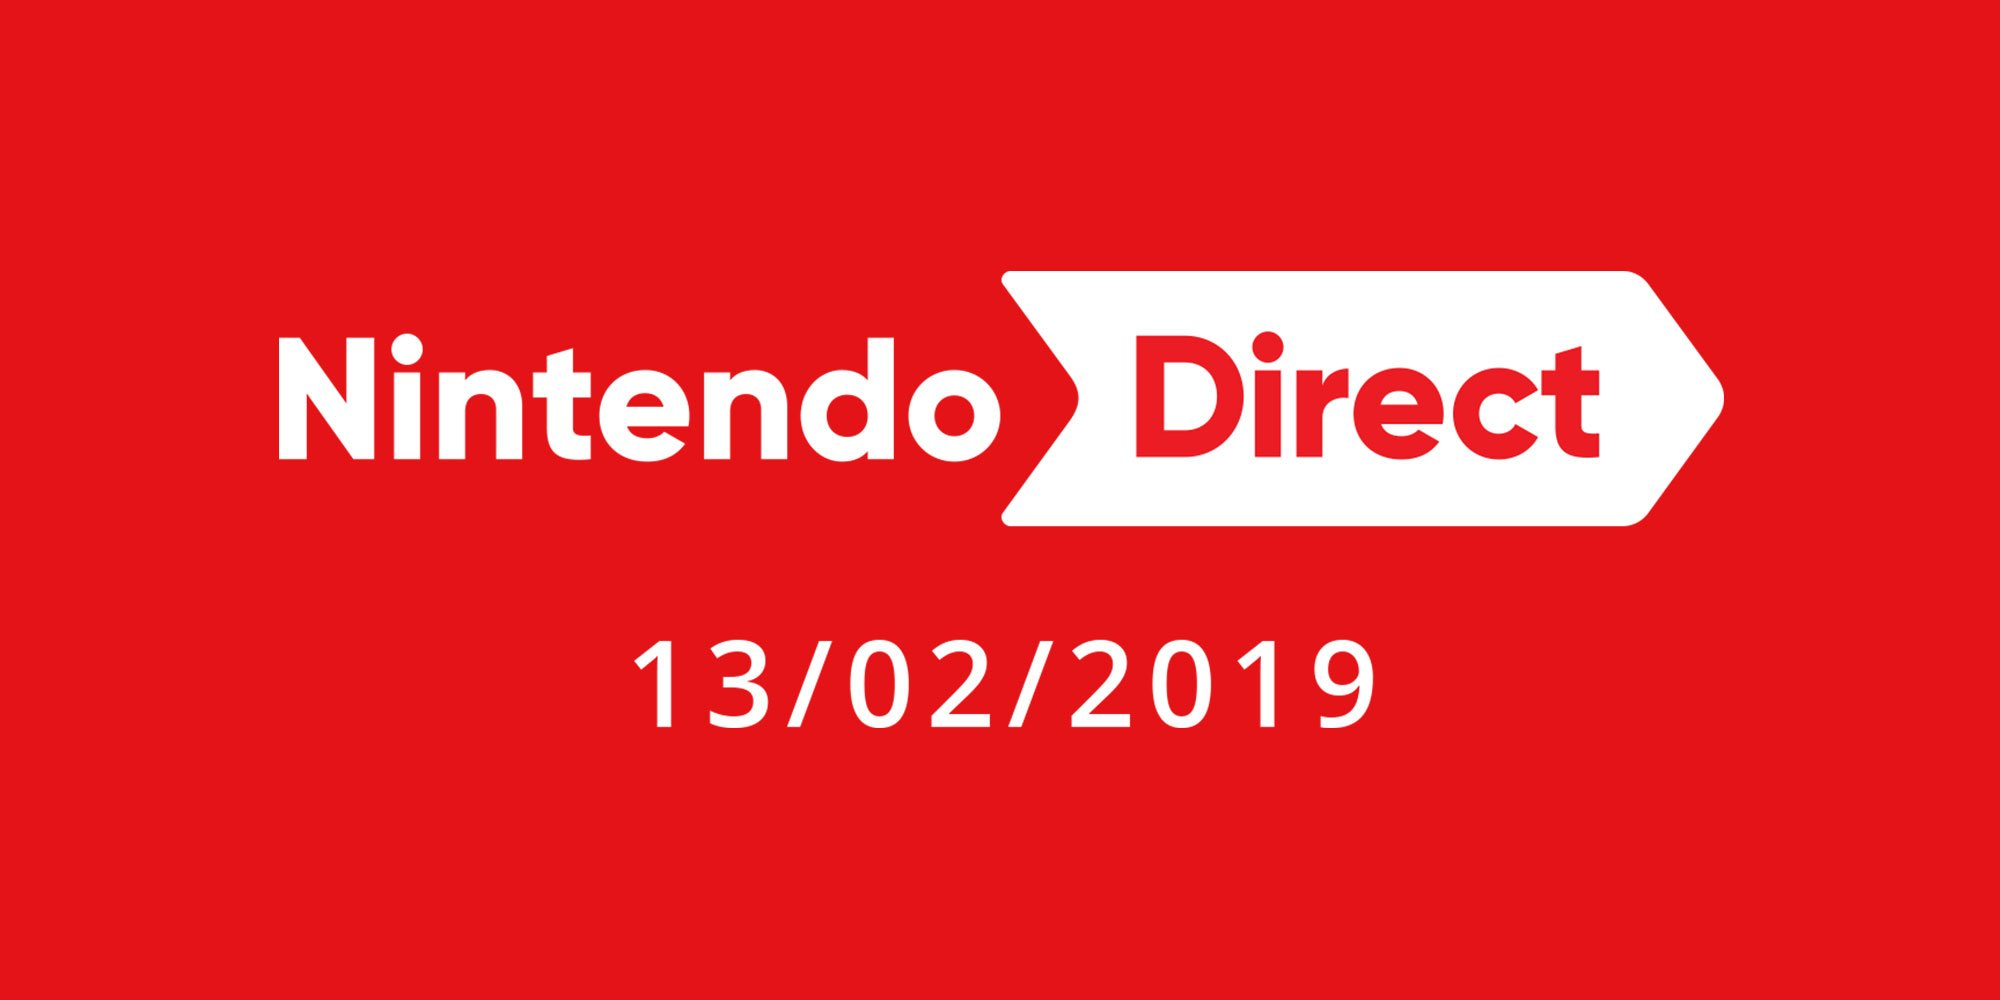 Nintendo Direct confirmed for tomorrow – Fire Emblem news promised